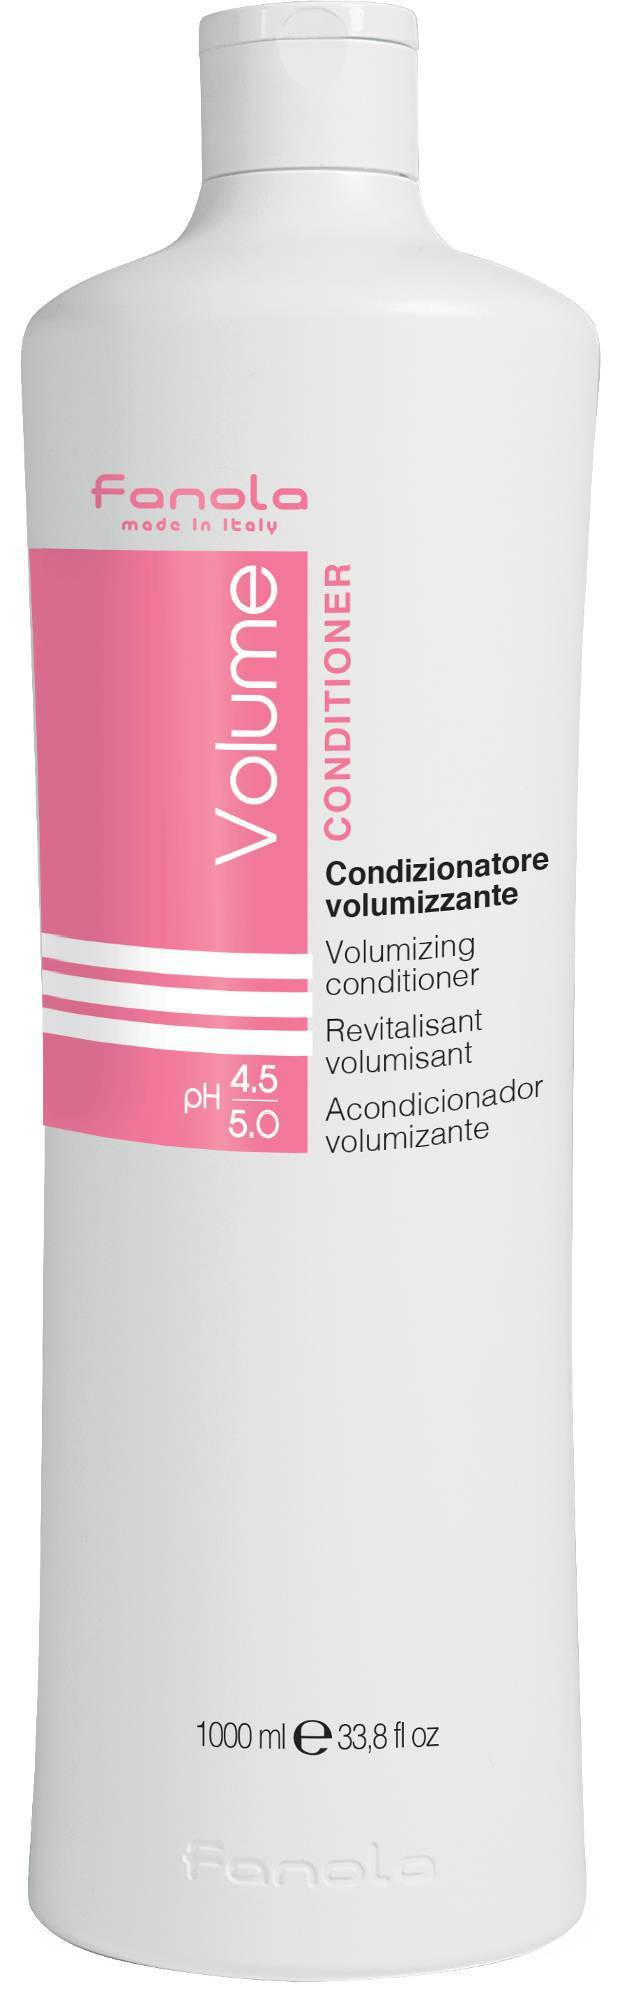 Fanola Volumizing Conditioner, Hair Conditioners Fanola 1000 ml